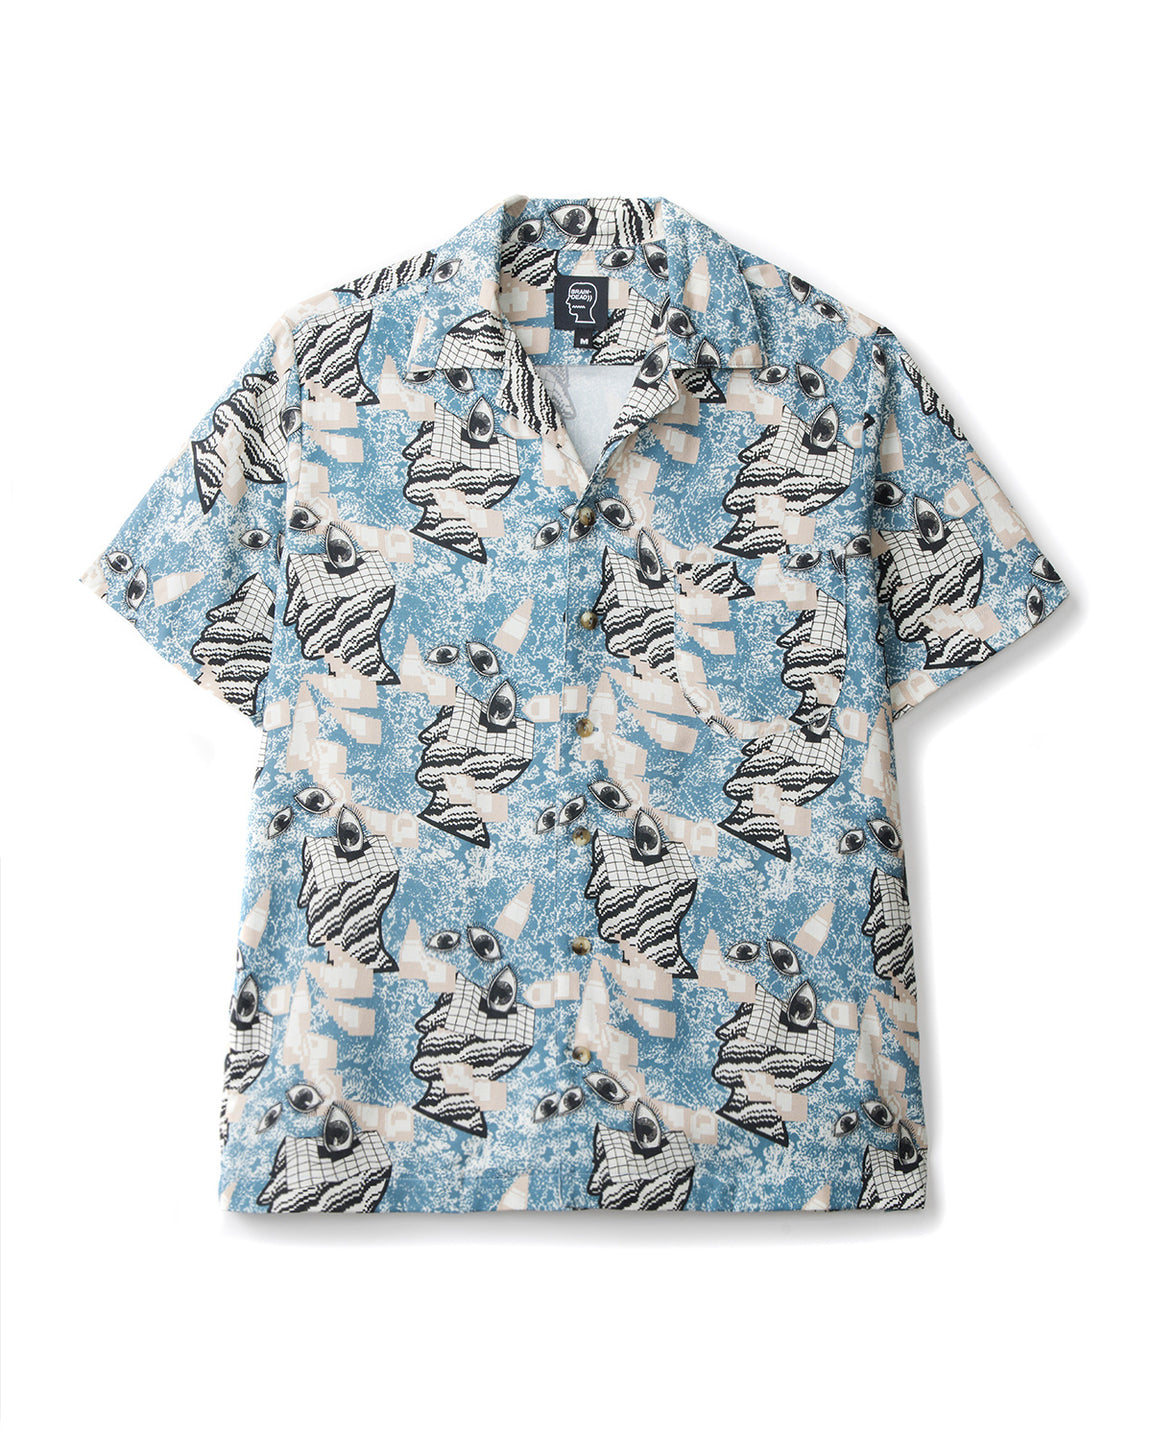 Rayon Hawaiian Shirt - Surreal